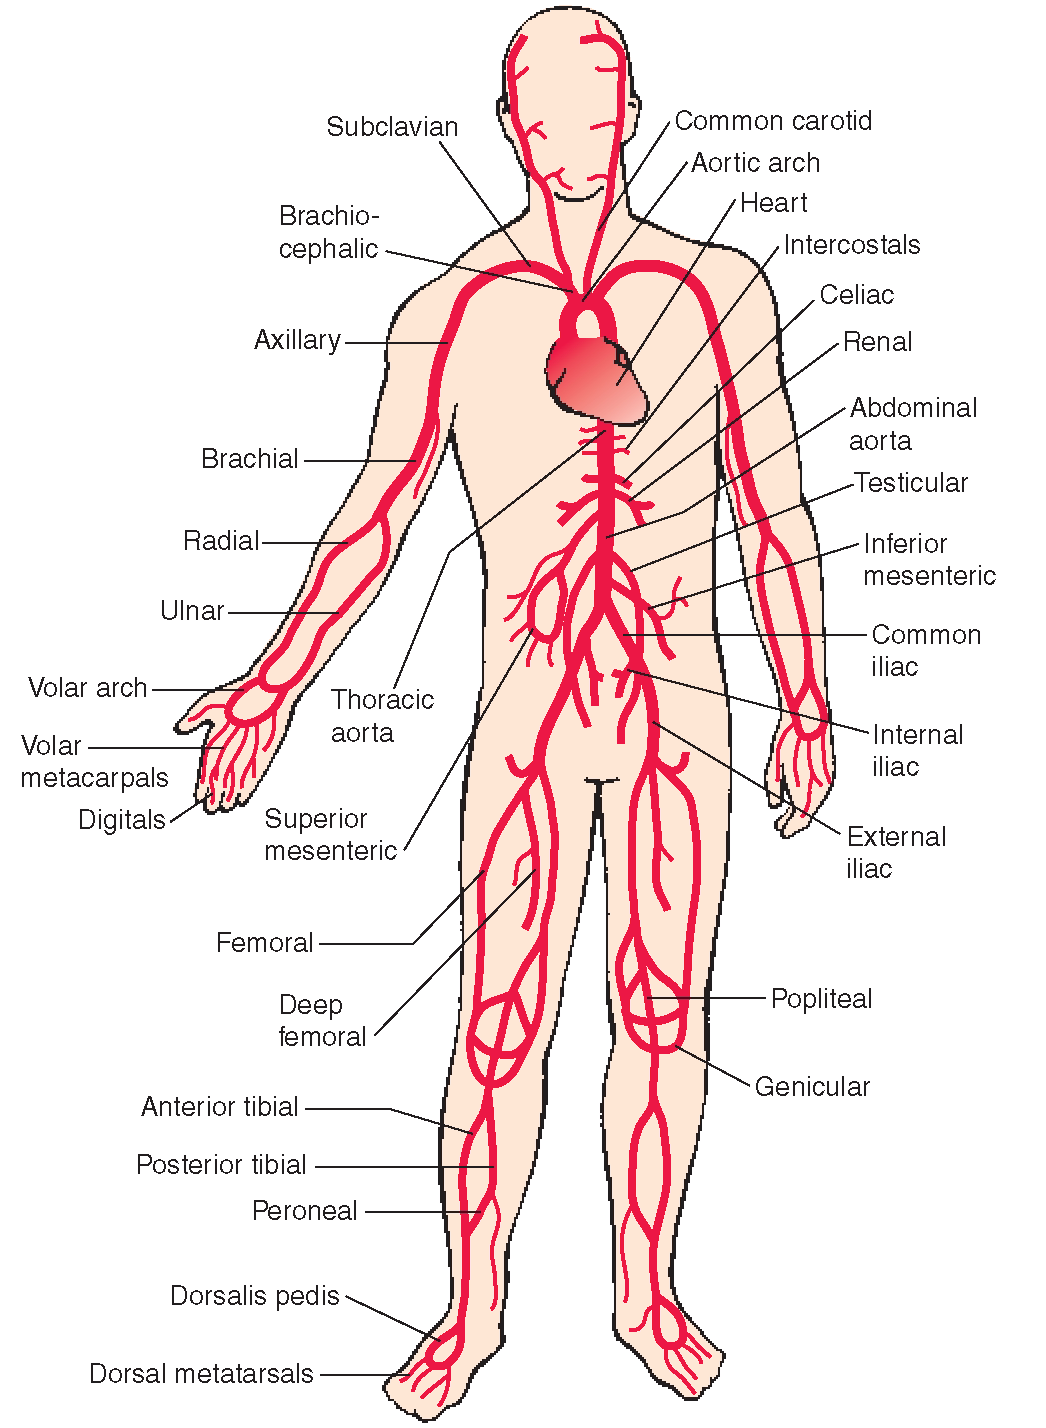 Principal systemic arteries. The arterial system carries ...